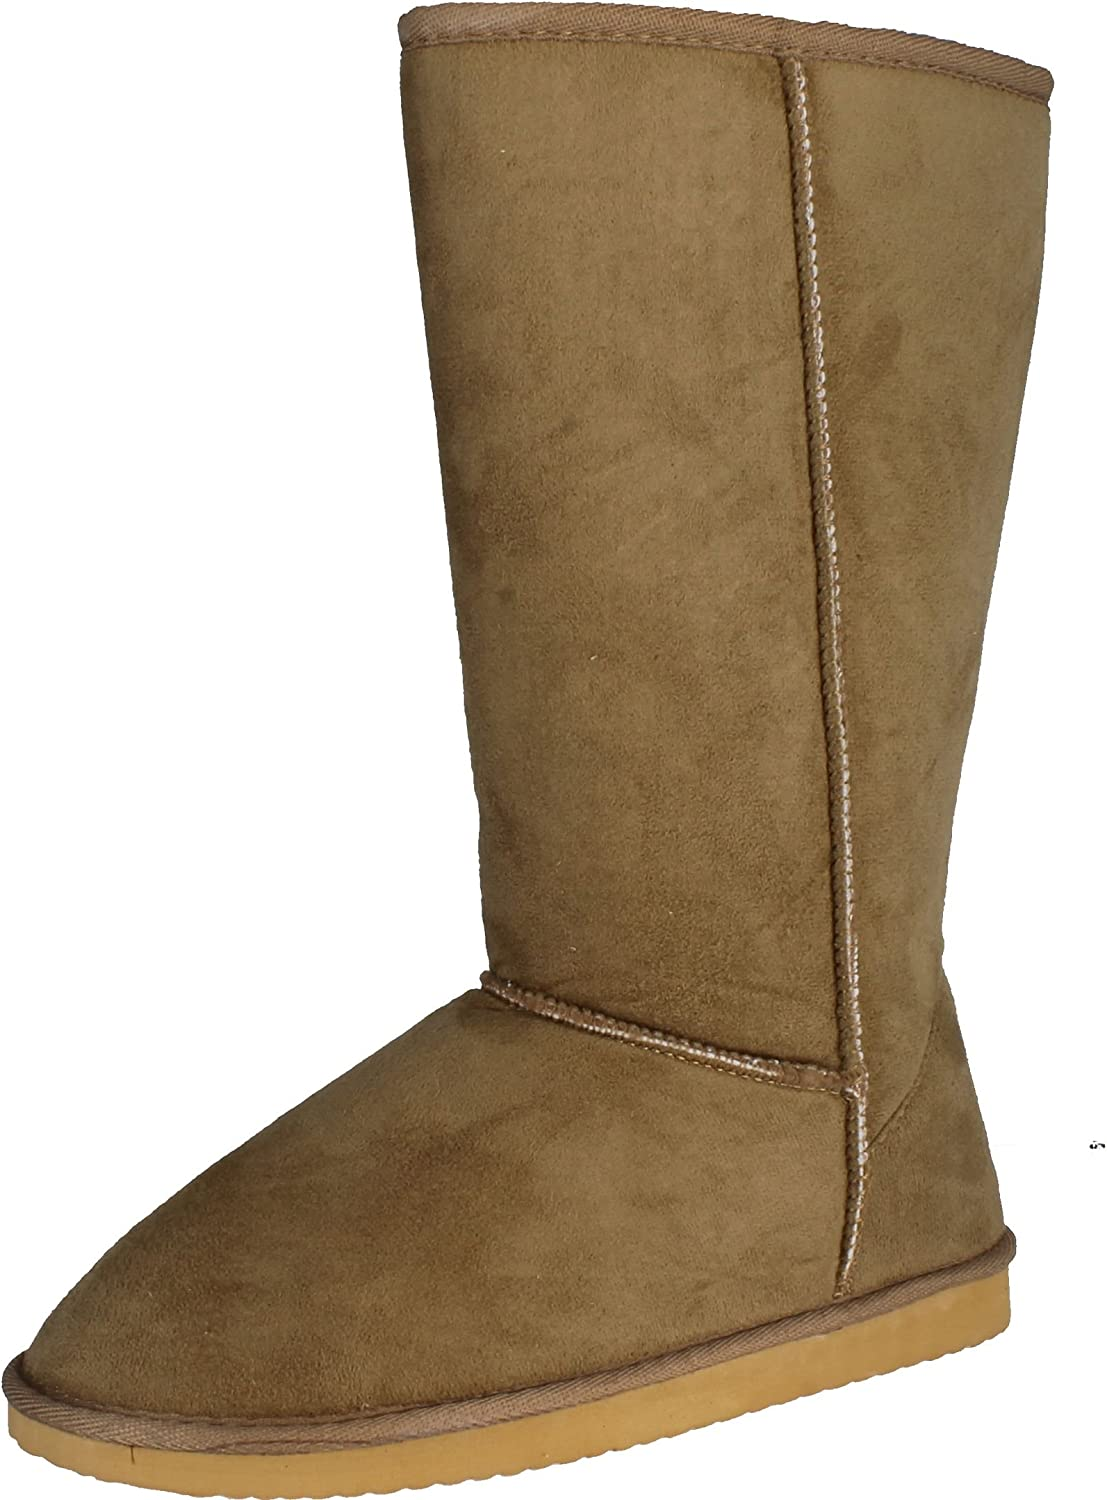 Top Moda Smith 10 Womens Chunky Heel Lace up Buckle Ankle Booties Camel